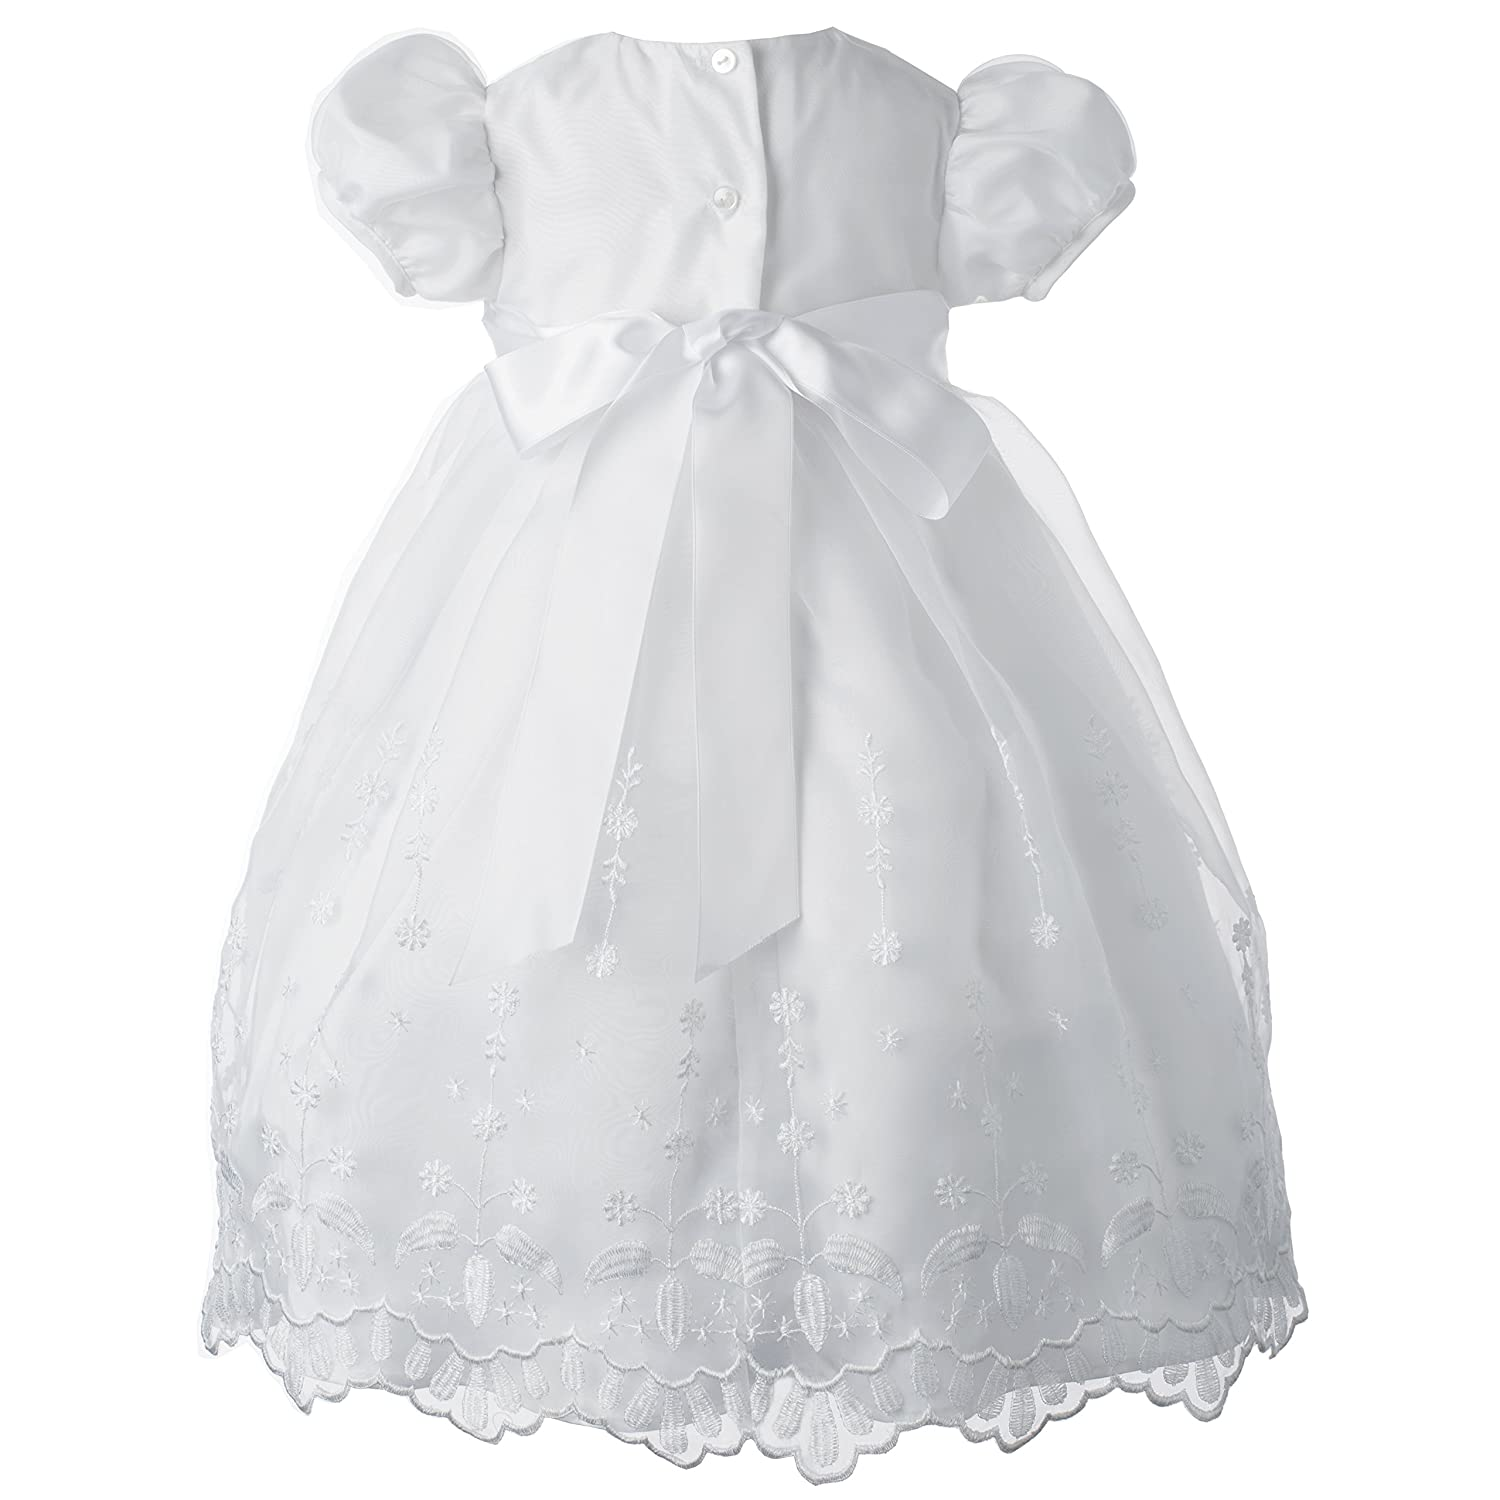 Lauren Madison Baby-Girls Newborn Satin Floral Embroidered Dress Gown Outfit 1365